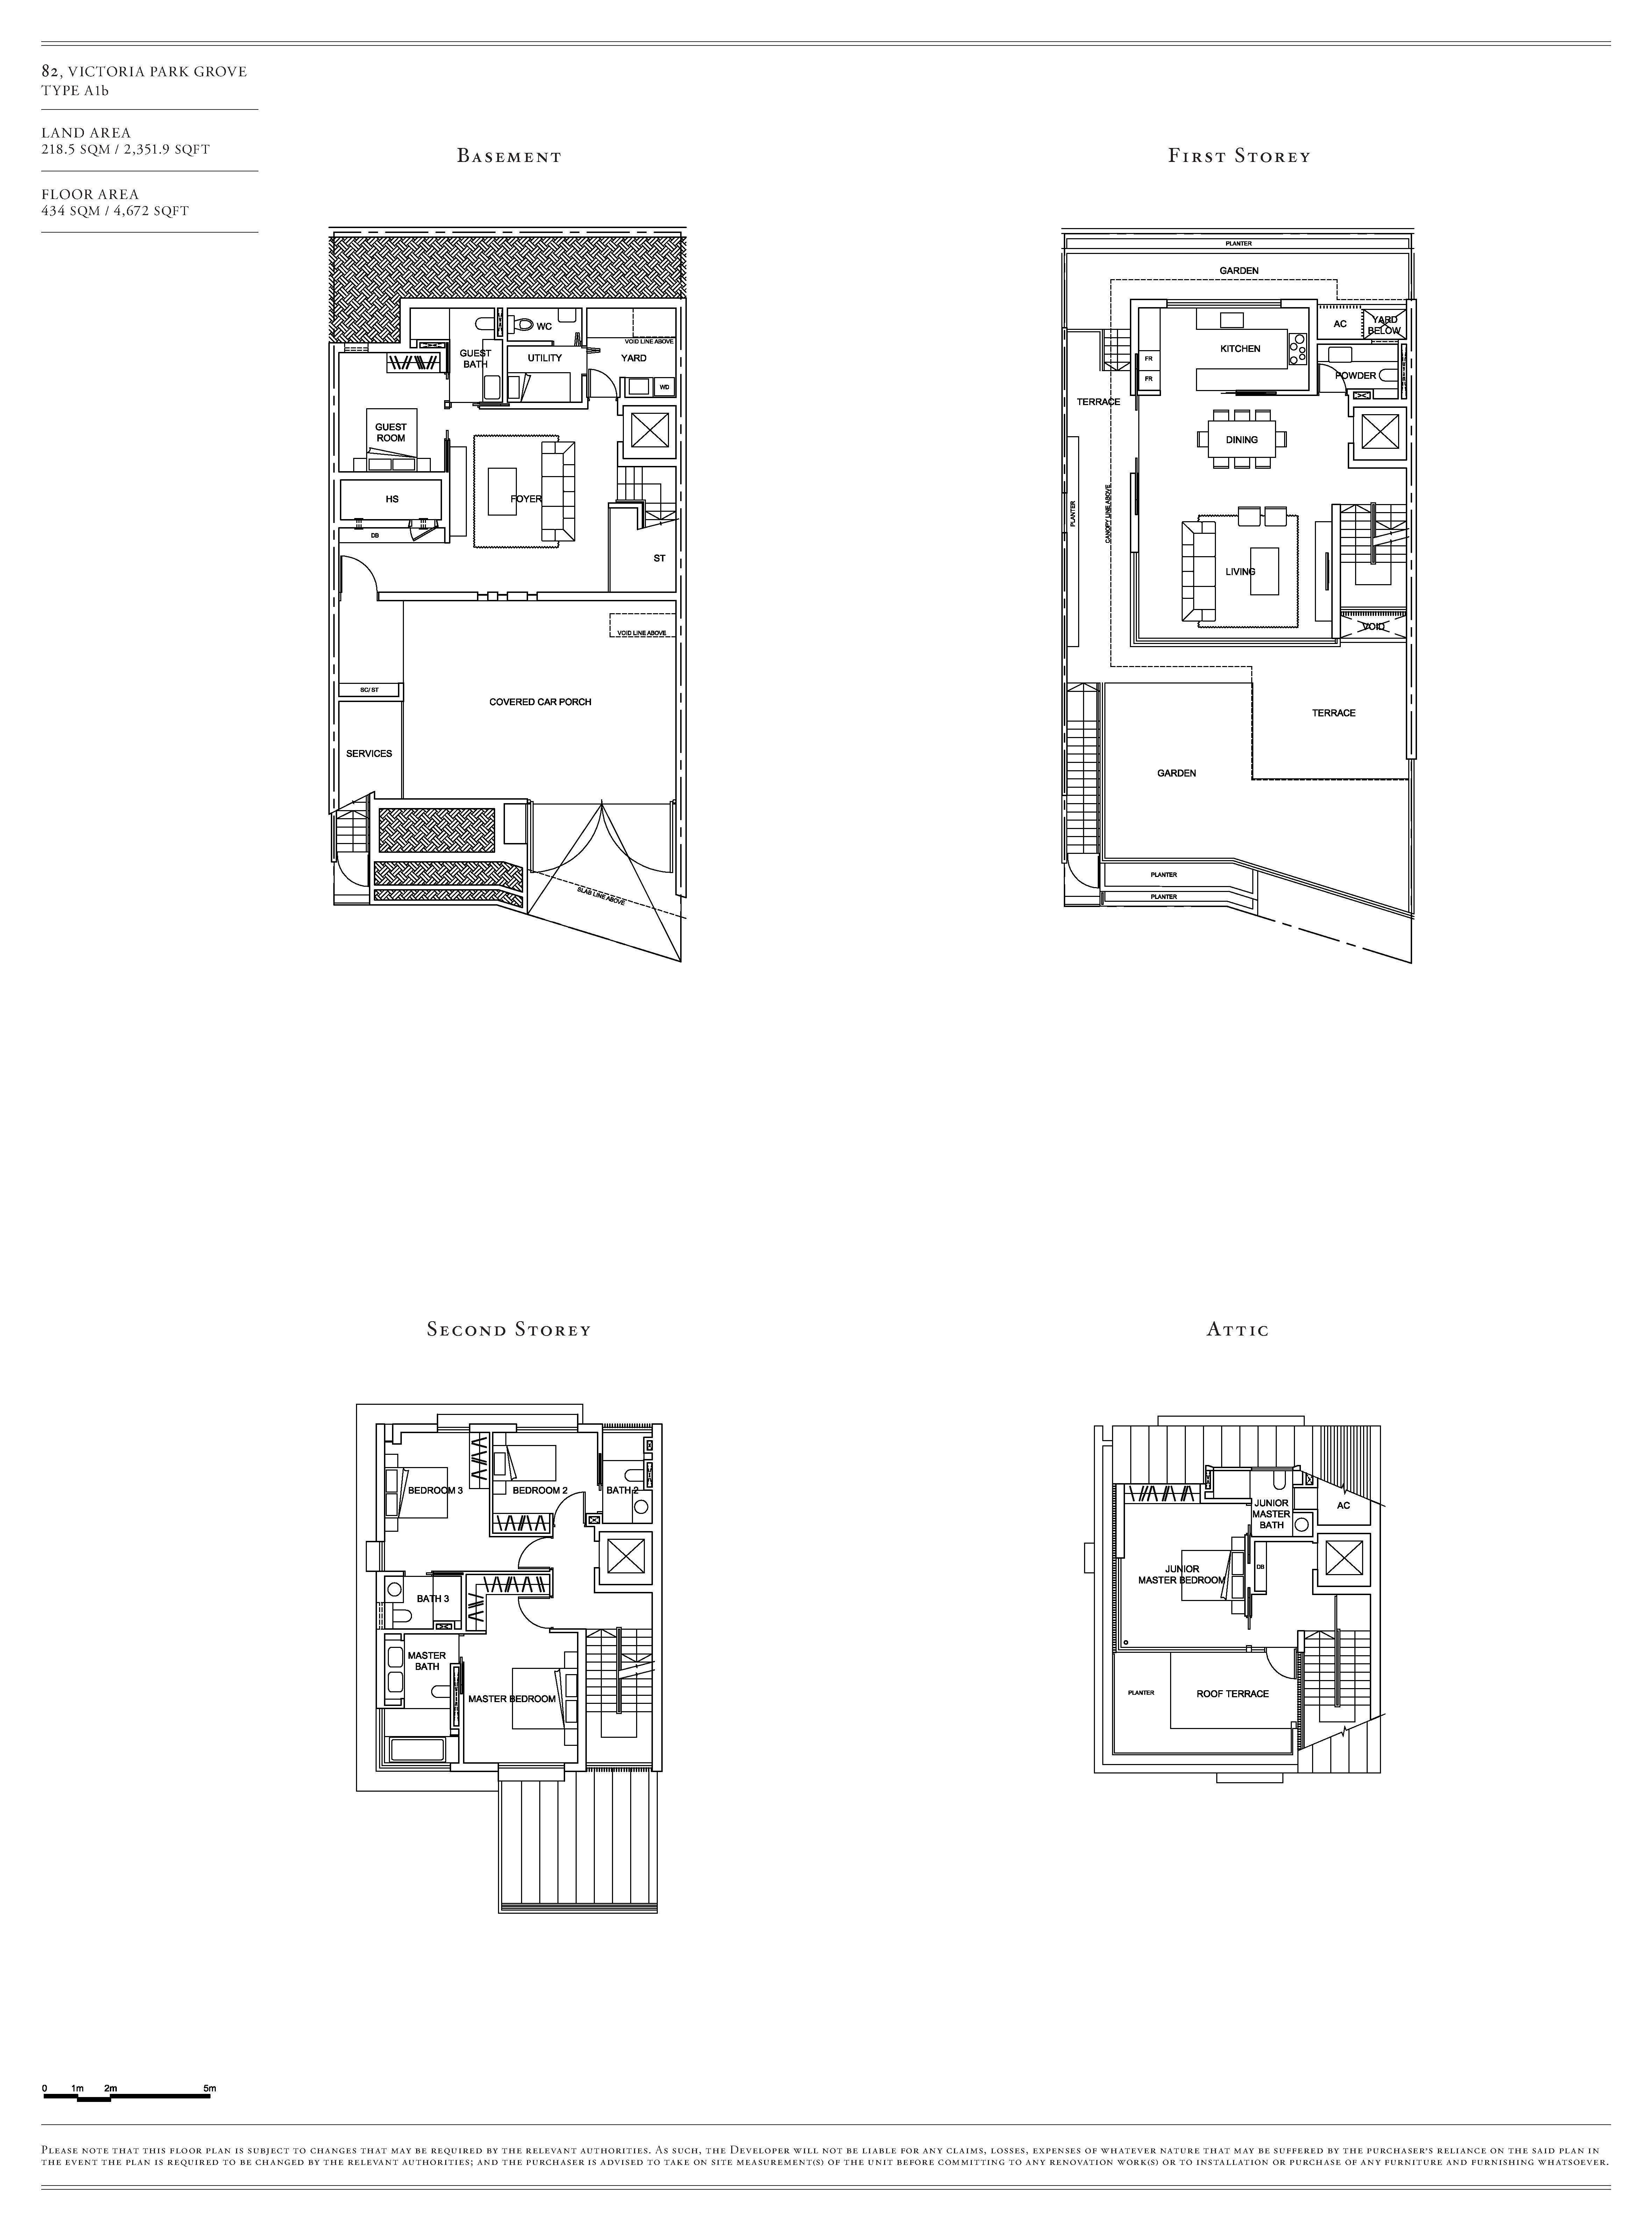 Victoria Park Villas House 82 Type A1b Floor Plans